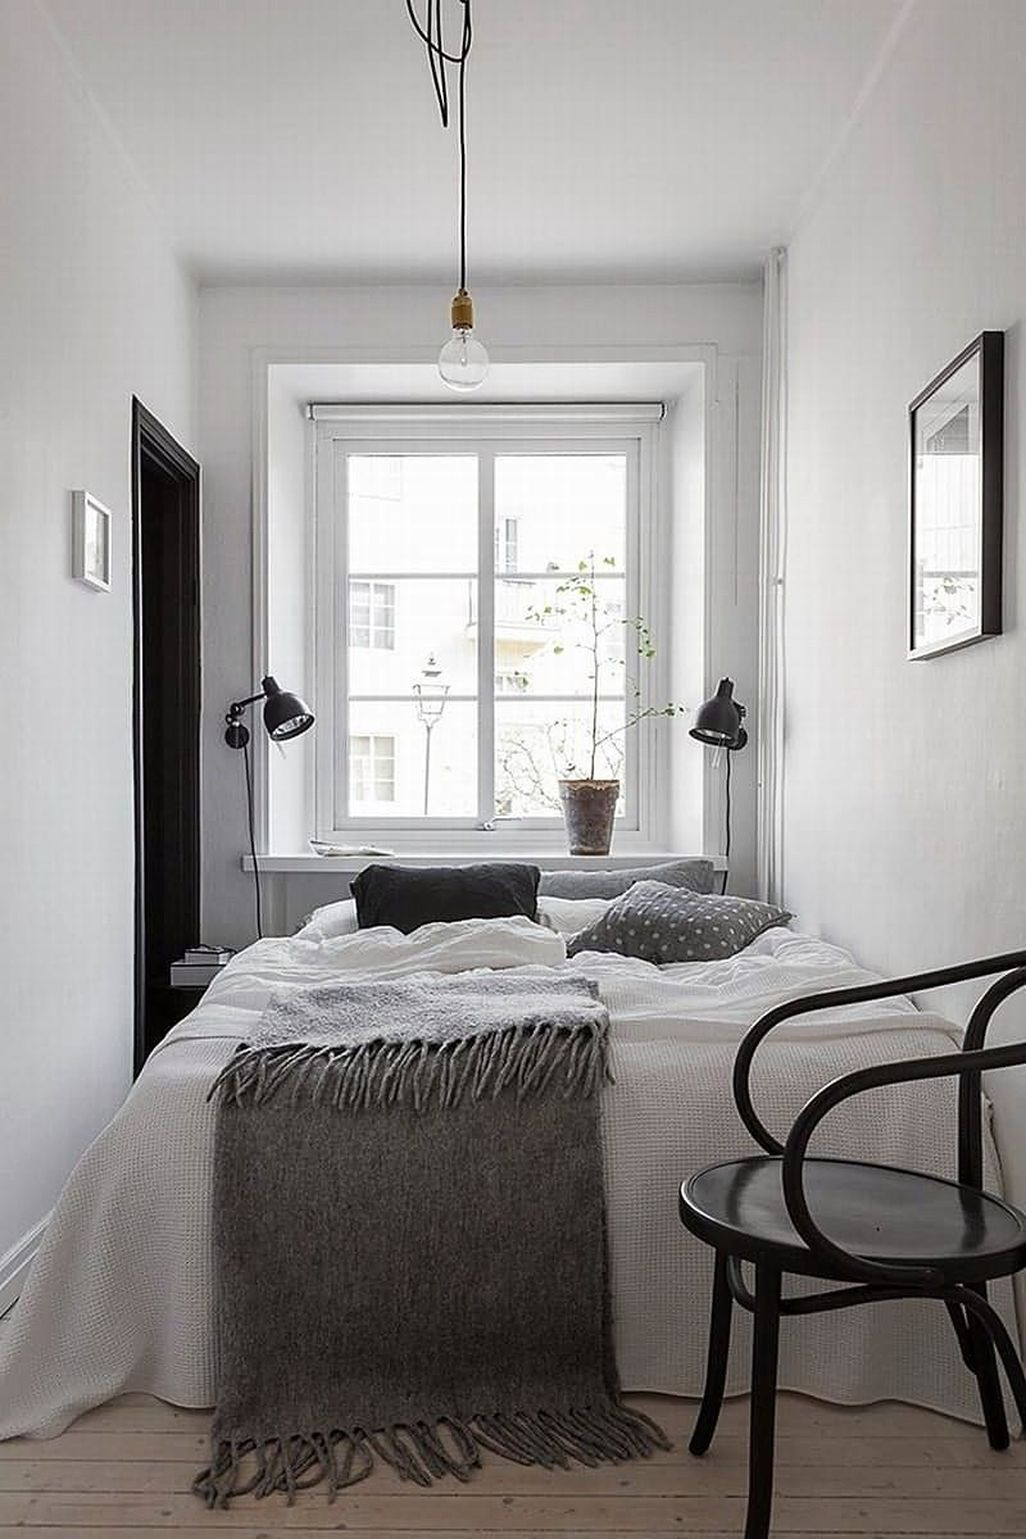 Awesome amazing small apartment bedroom decoration ideas more at https trend homy also rh pinterest